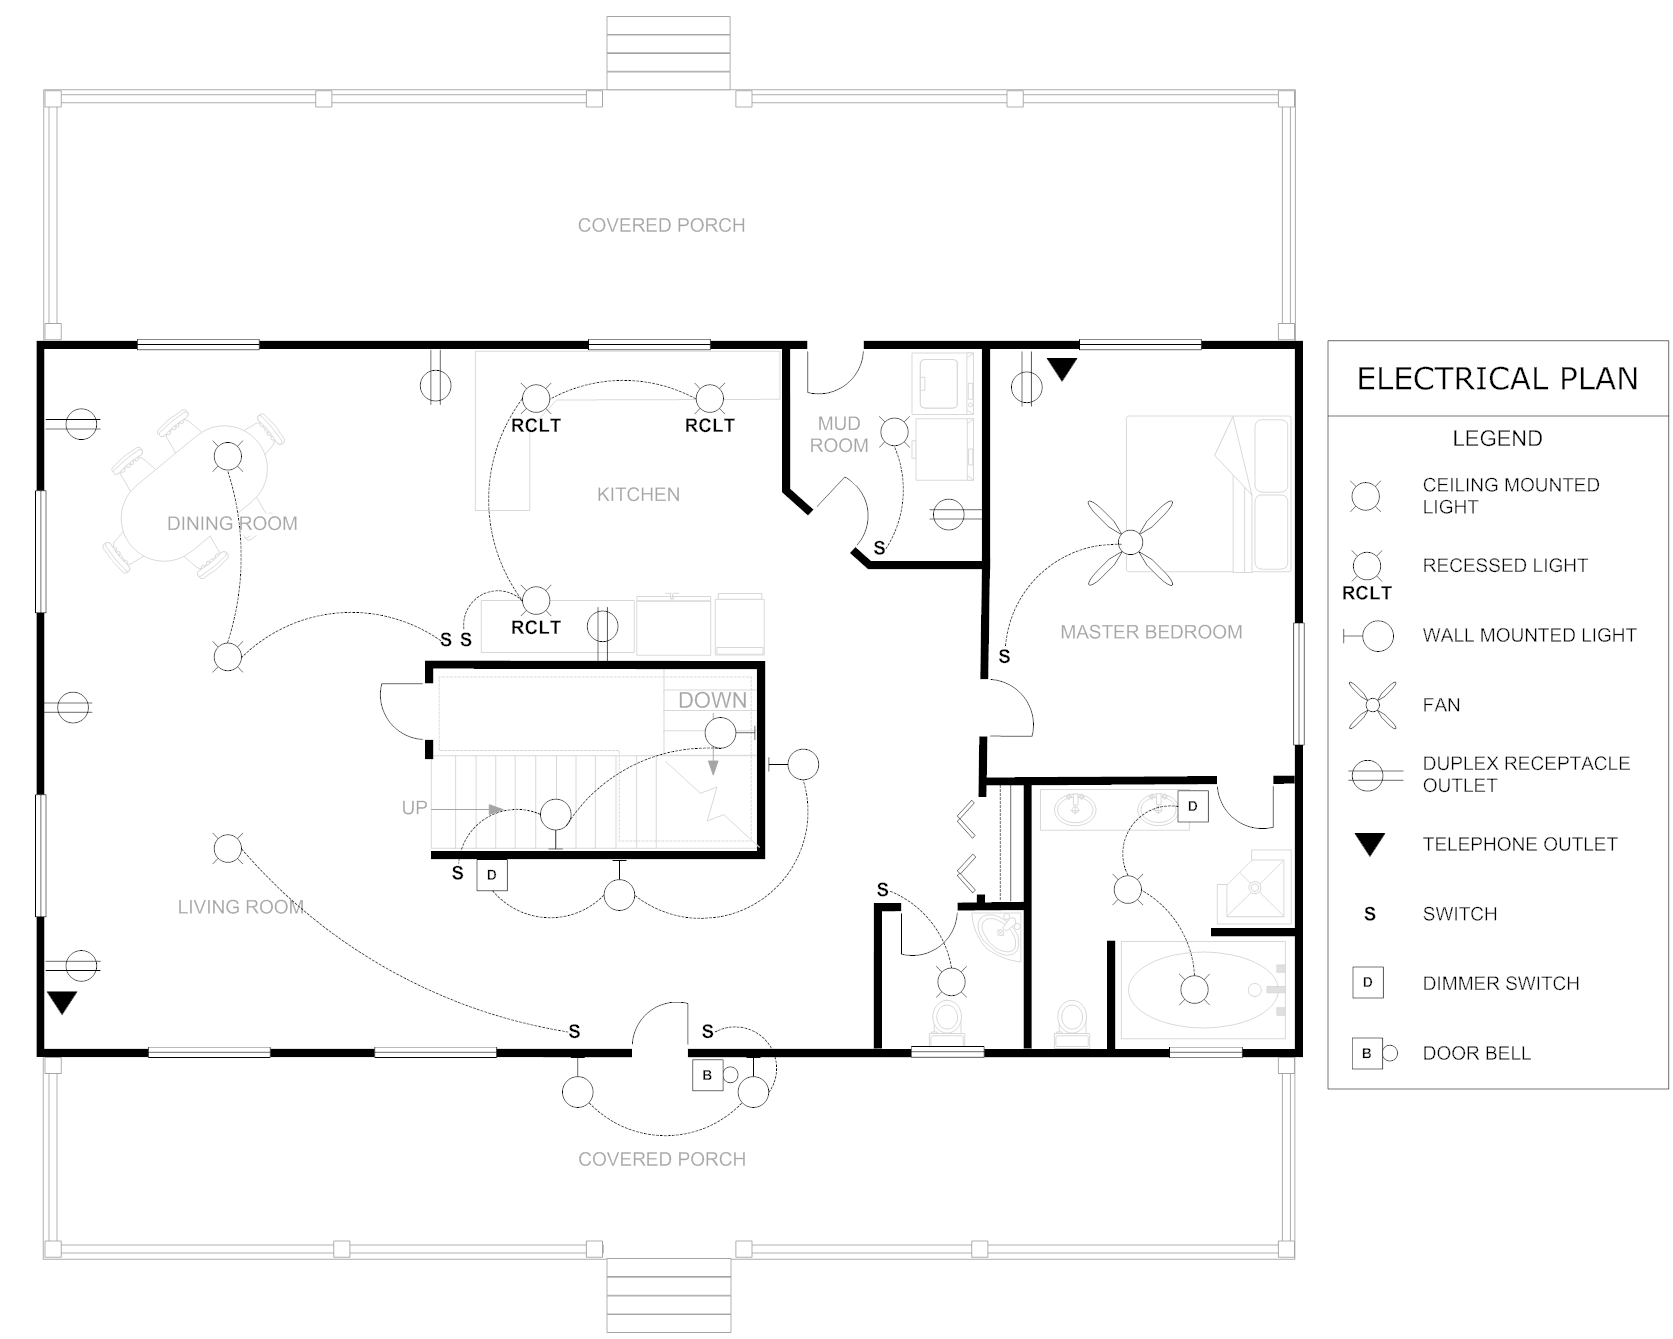 floor plan example electrical house  home building plans, wiring diagram